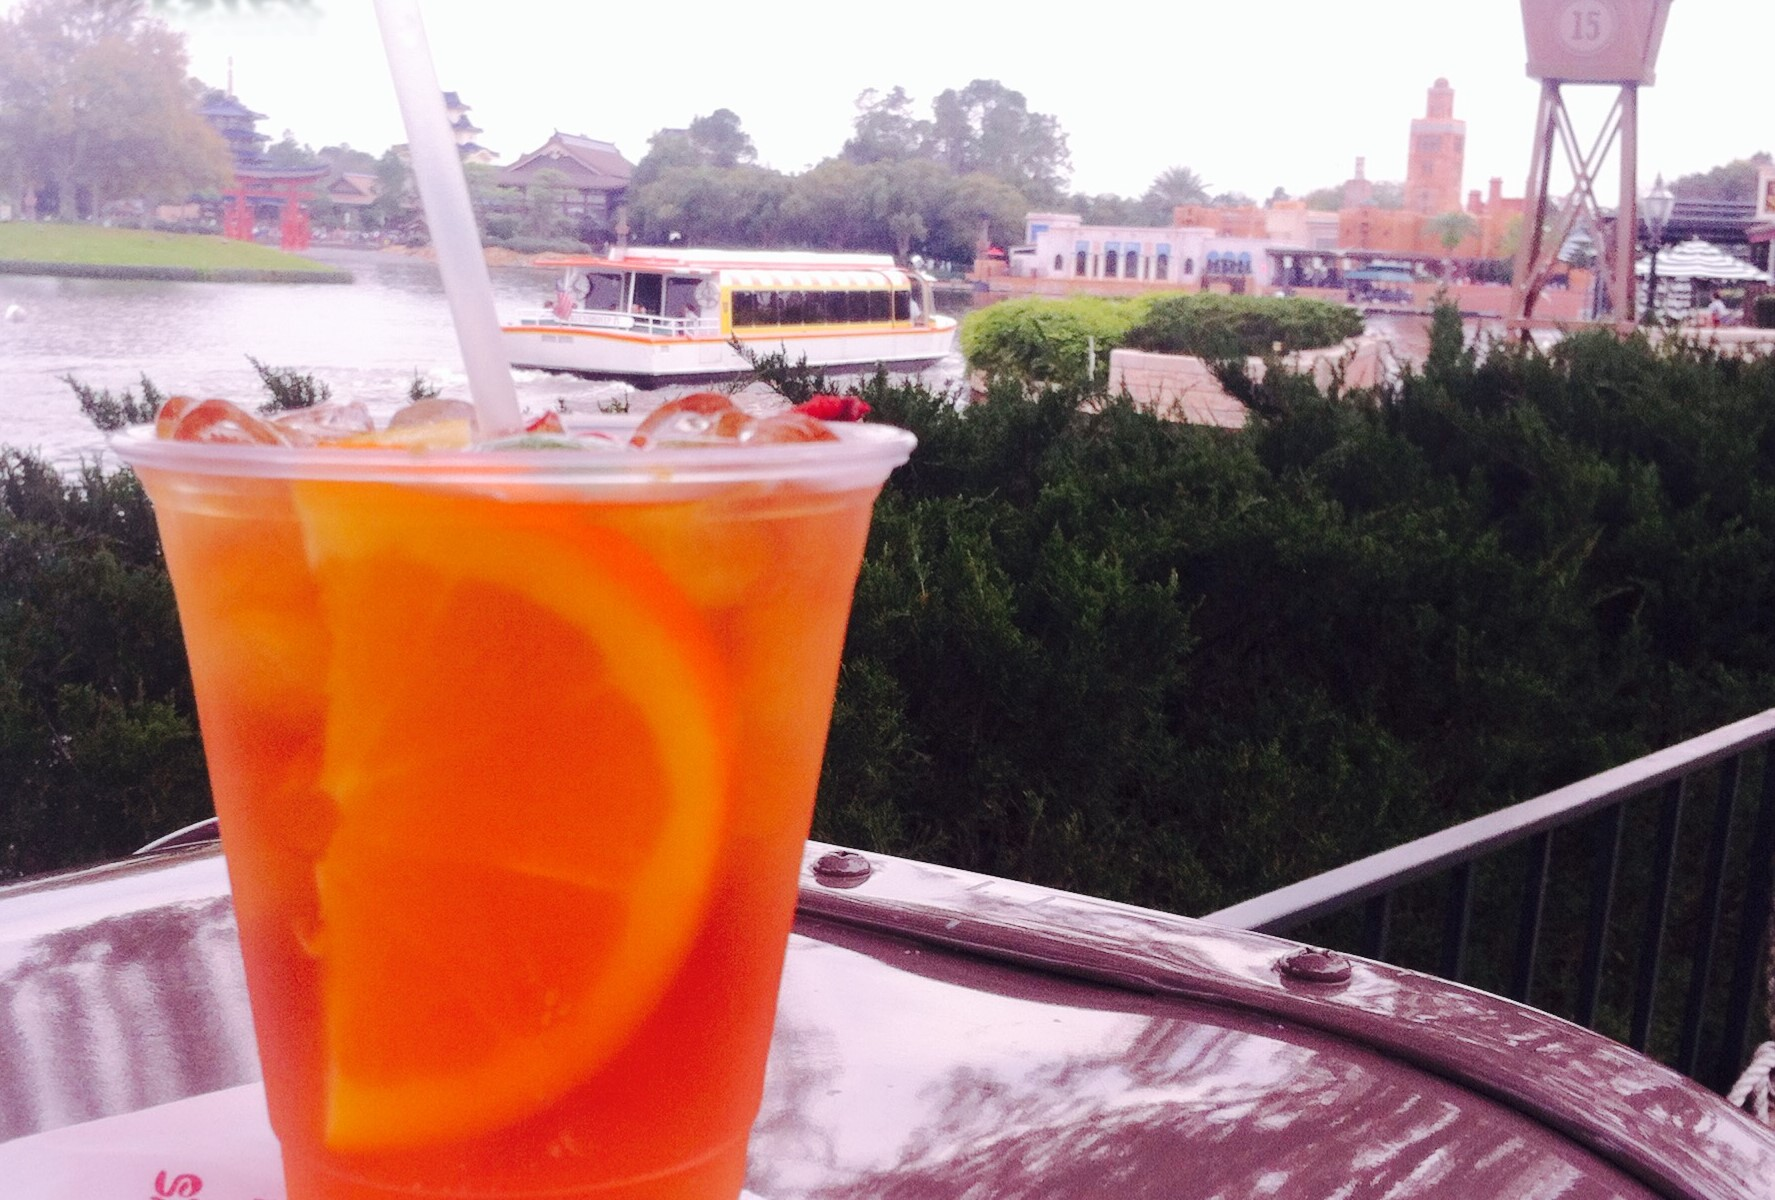 Pimm's Cup at Epcot with U.K. Pavilion in the background